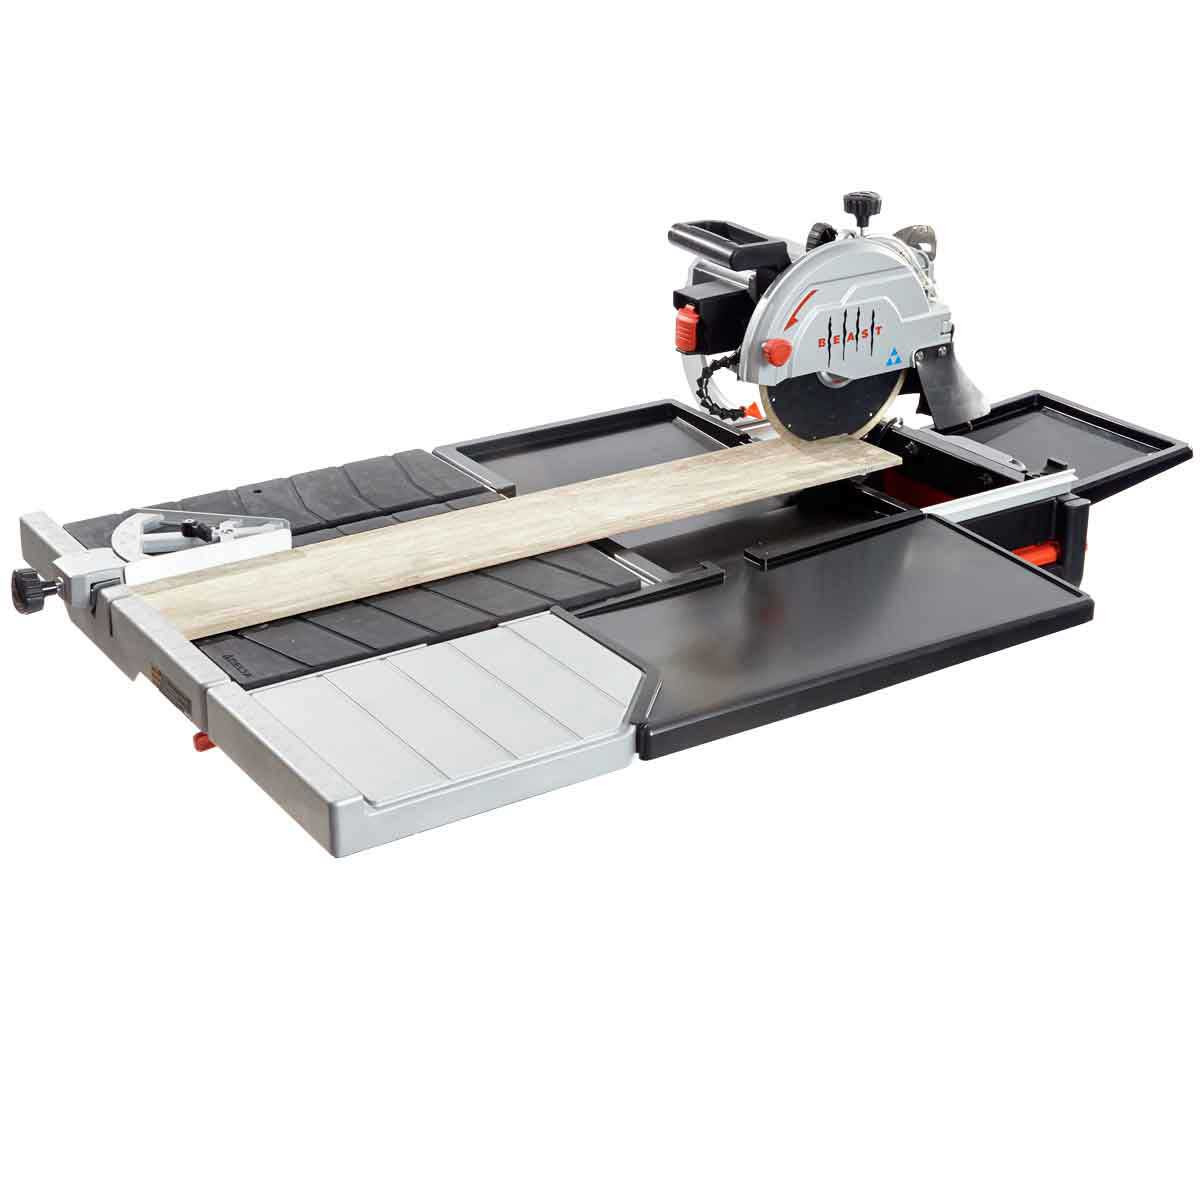 Lackmond Beast10 tile saw with side extension table and pan